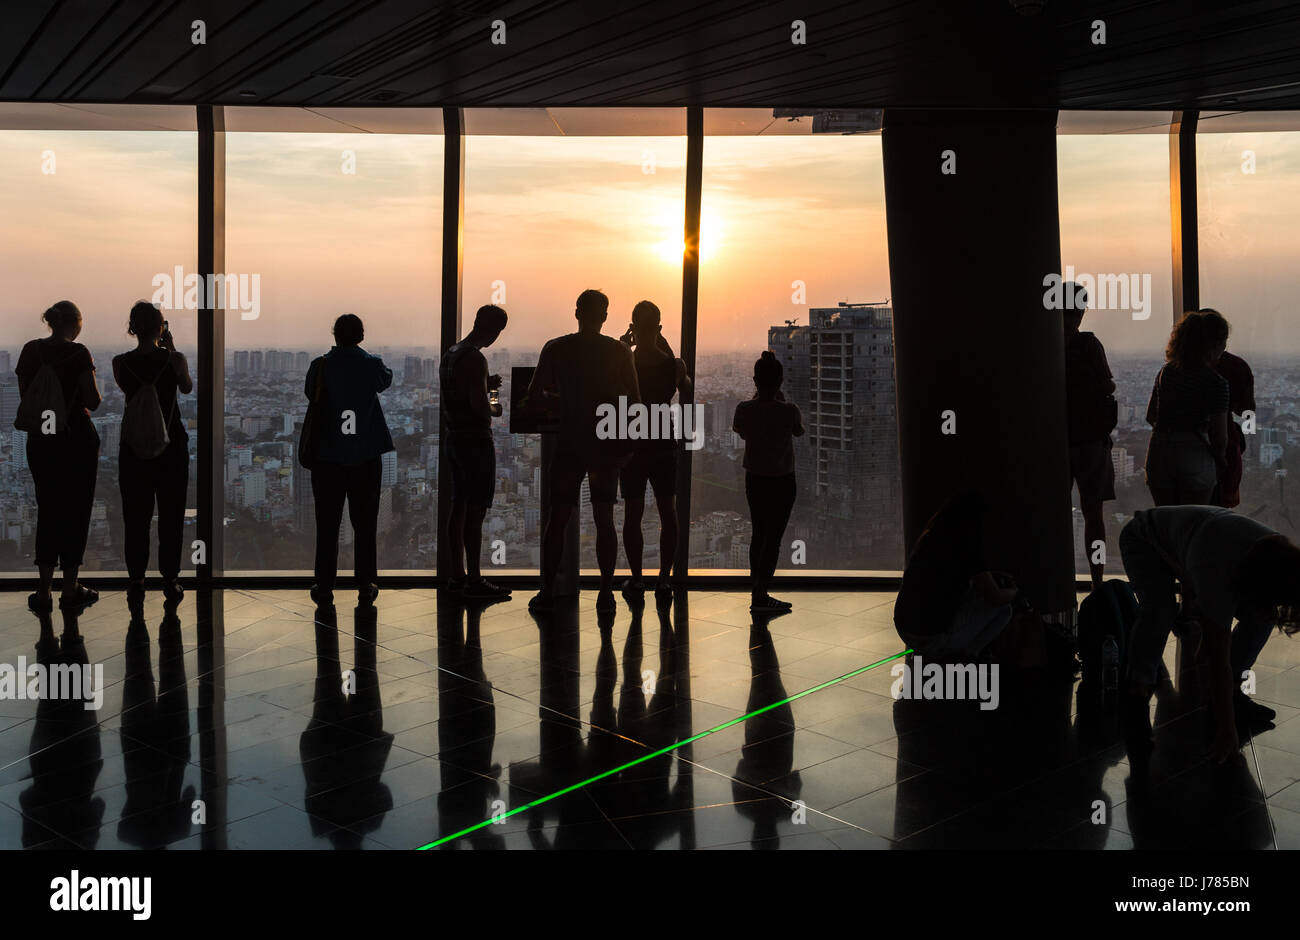 HO CHI MINH CITY, VIETNAM - APRIL 15: Tourists enjoy the view from an observatory in a tall building in Ho Chi Minh - Stock Image